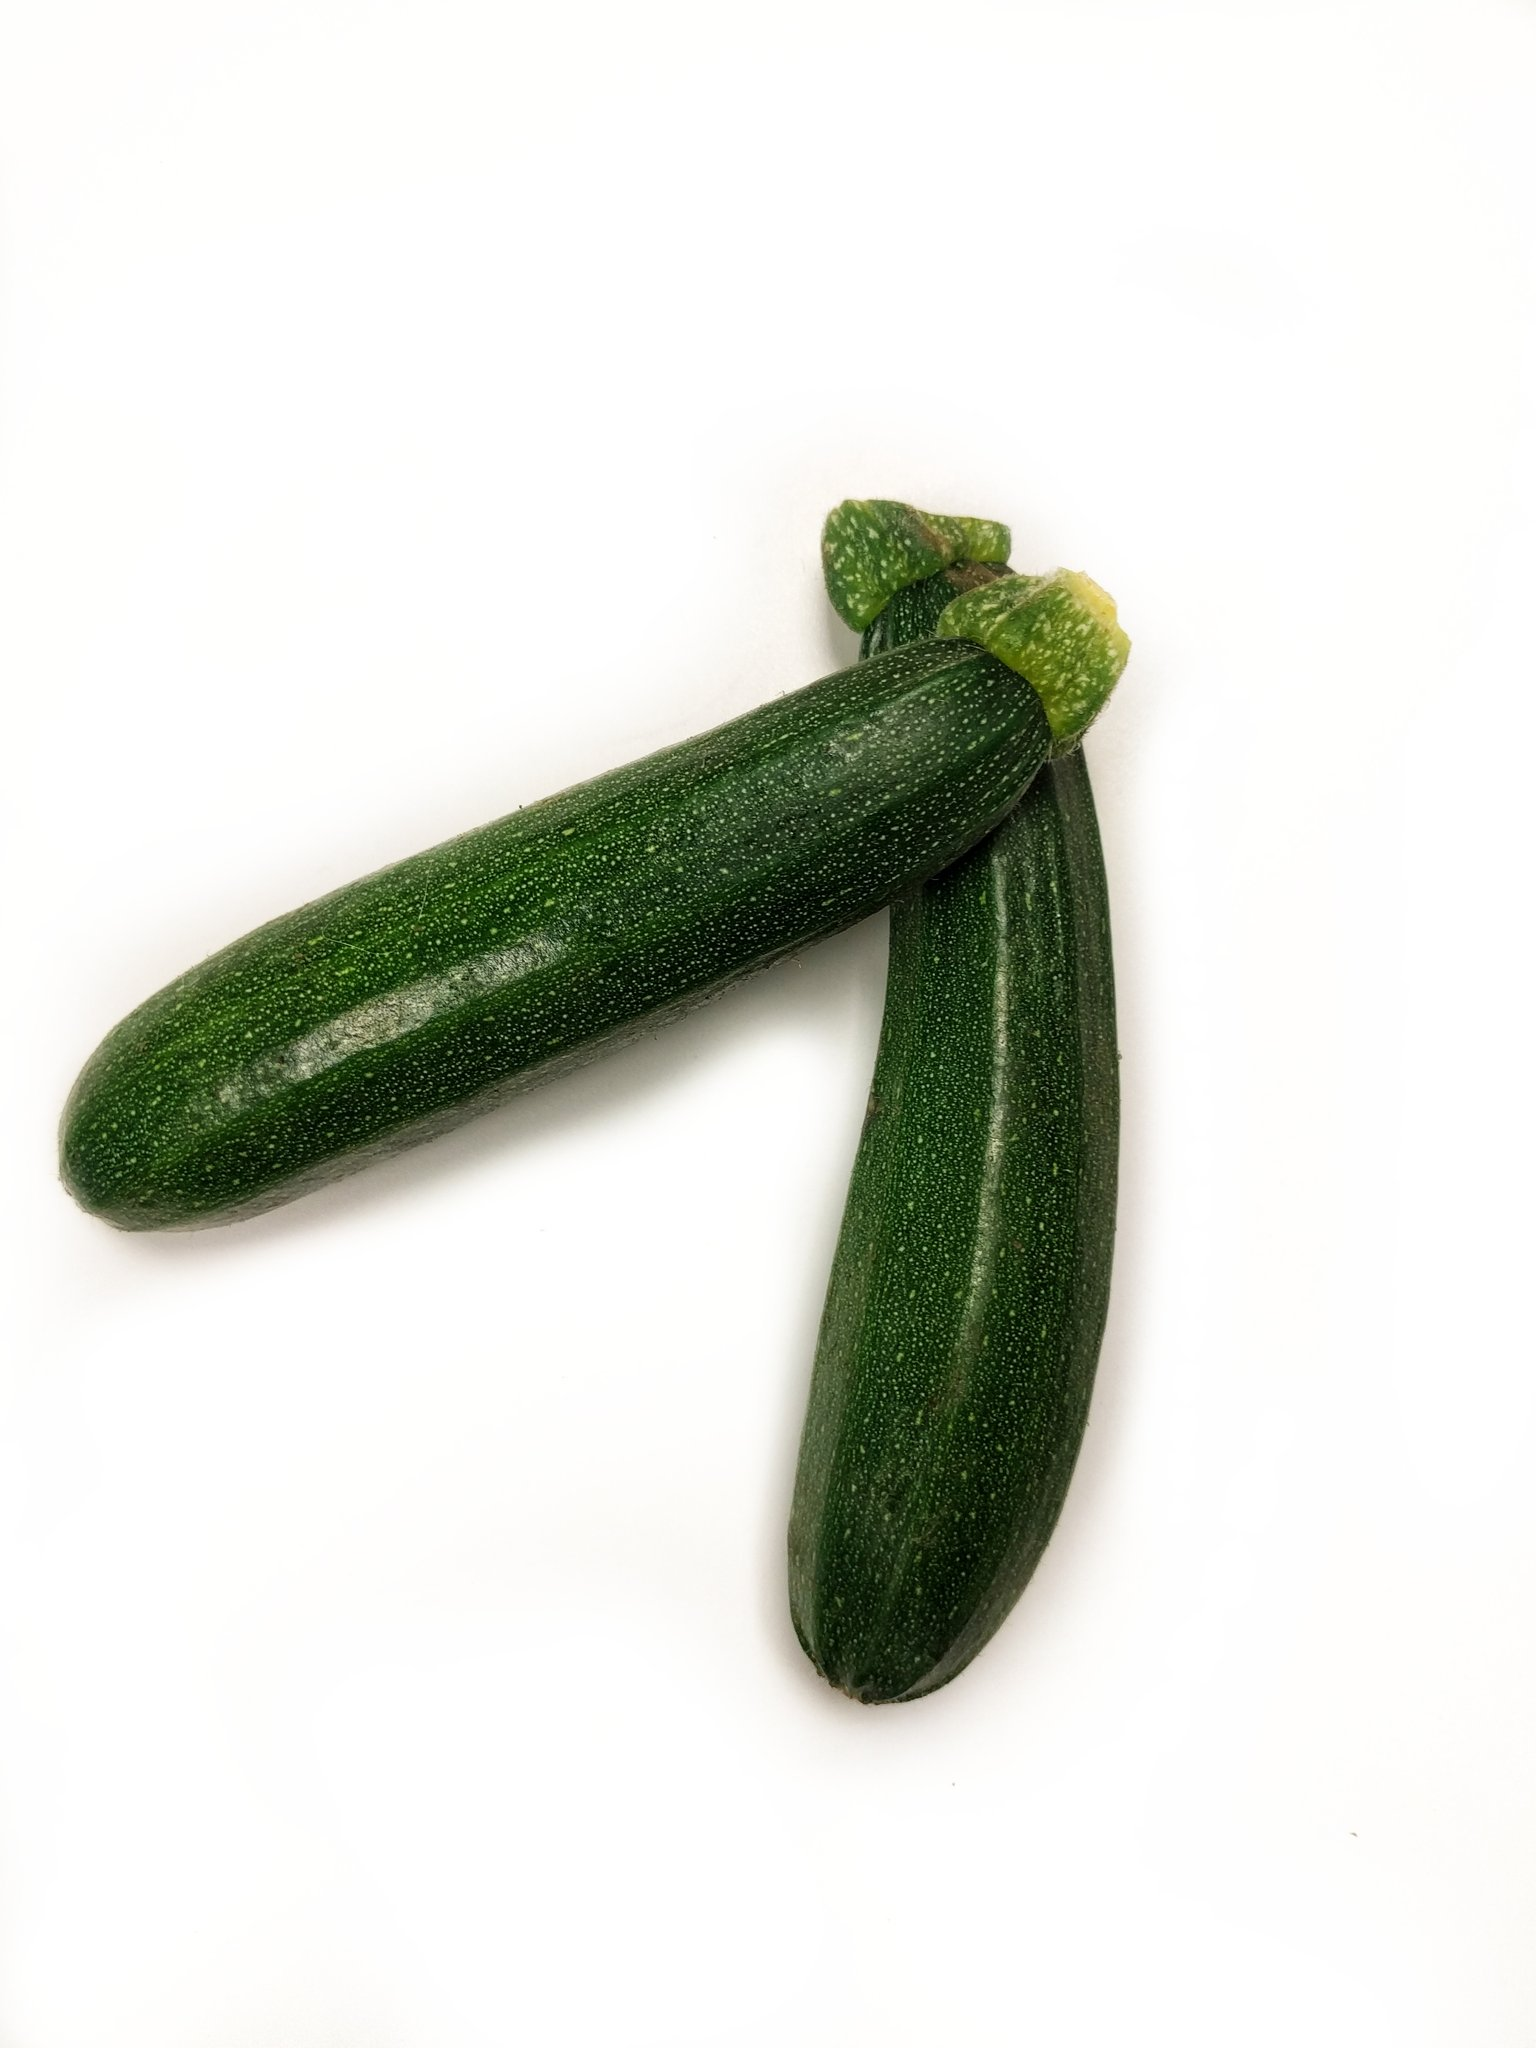 20180210 - green courgettes.jpg